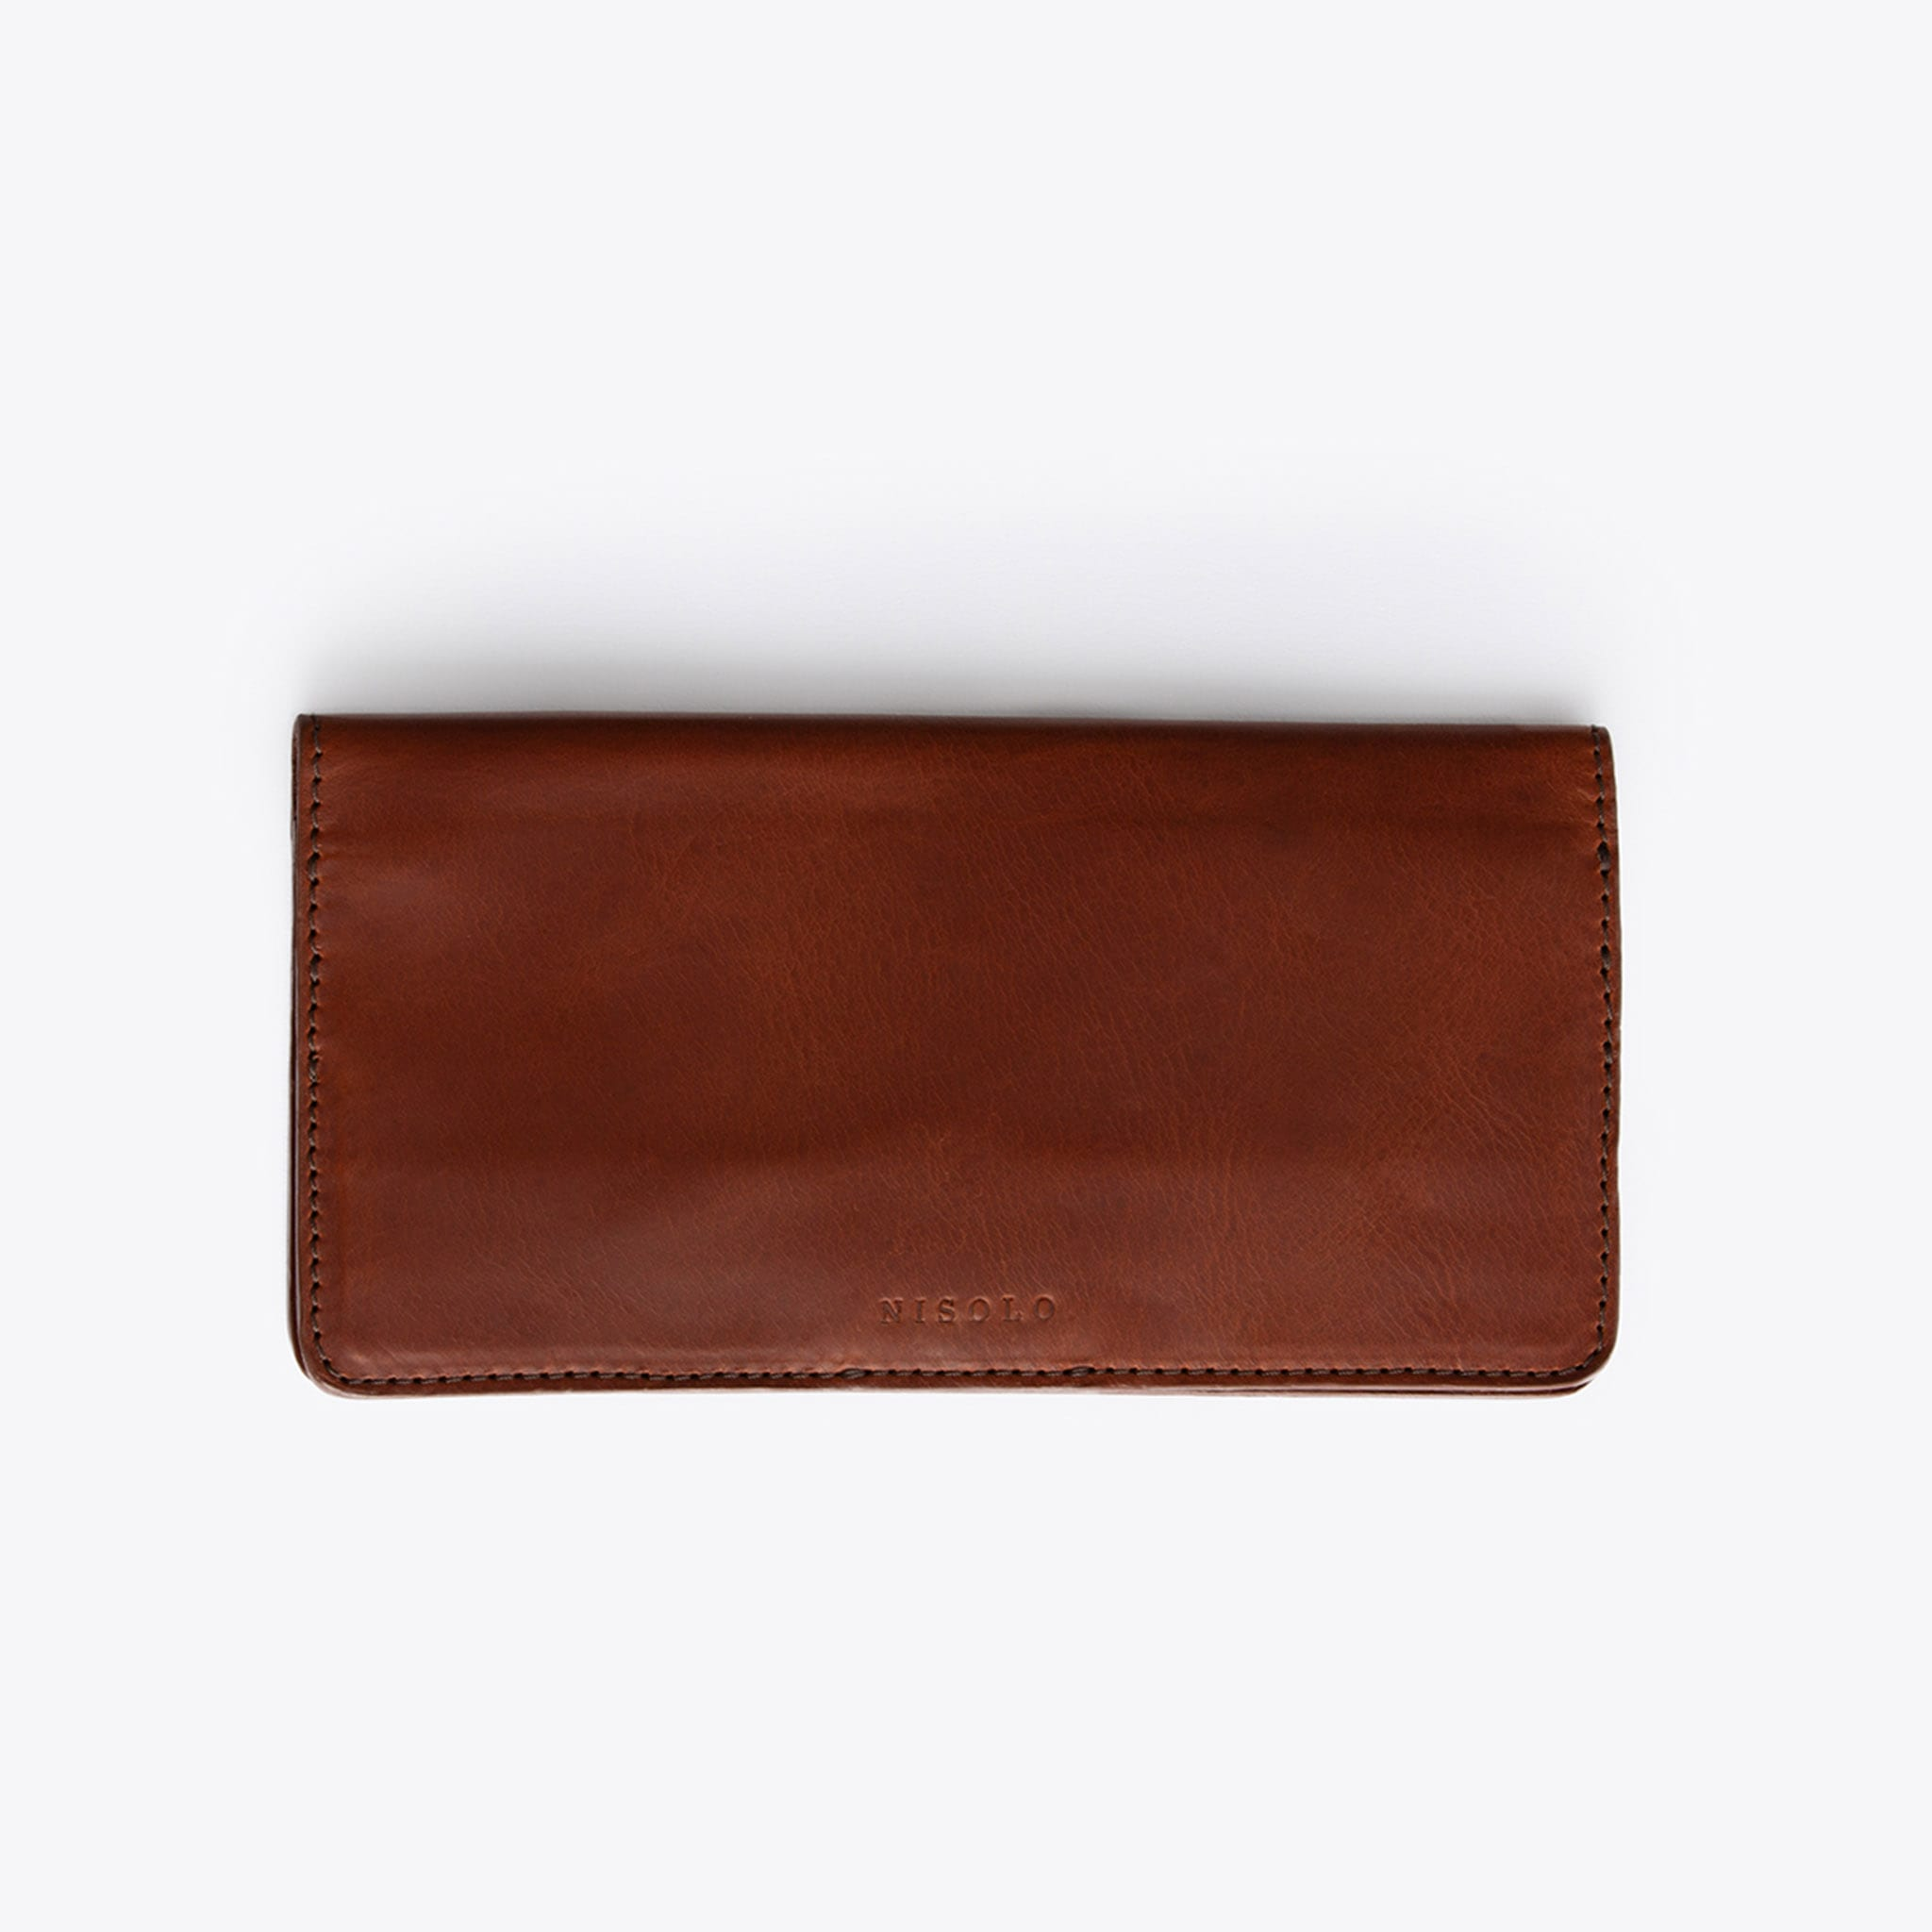 Nisolo - Classic Wallet Rosewood